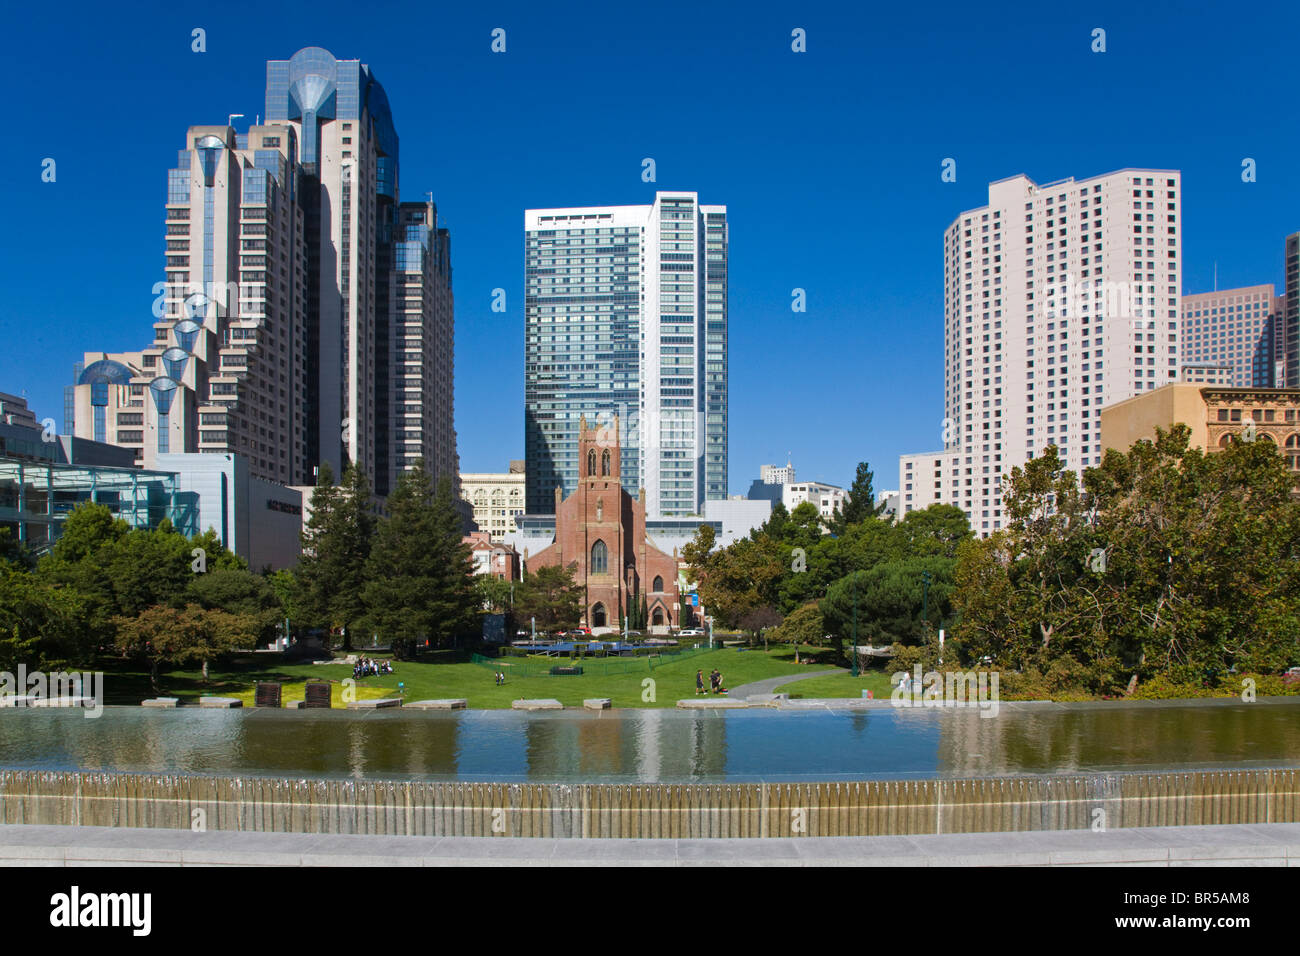 MARTIN LUTHER KING MEMORIAL  FOUNTAIN, the MARIOTT and FOUR SEASONS YERBA BUENA GARDENS SAN FRANCISCO, CALIFORNIA - Stock Image